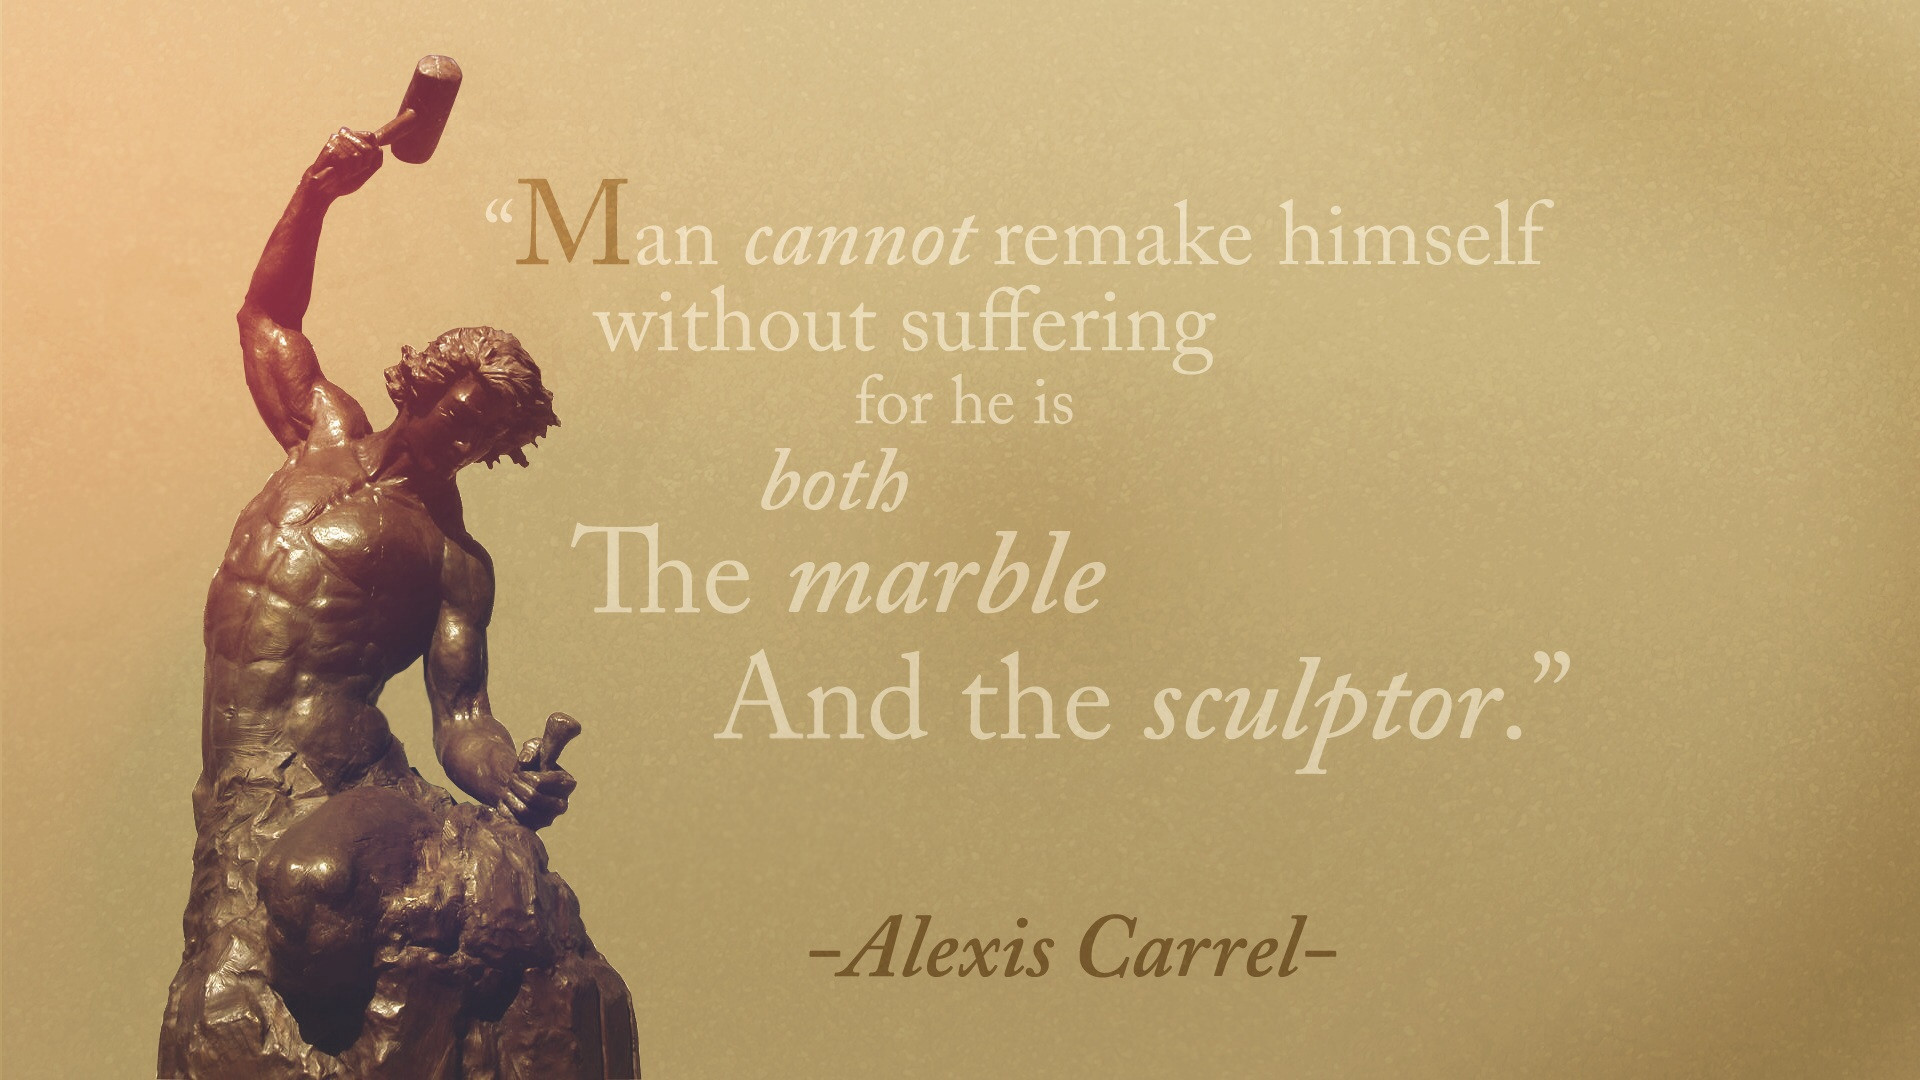 Man cannot remake himself without suffering for he is both the marble and the sculptor. – Alexis Carrel